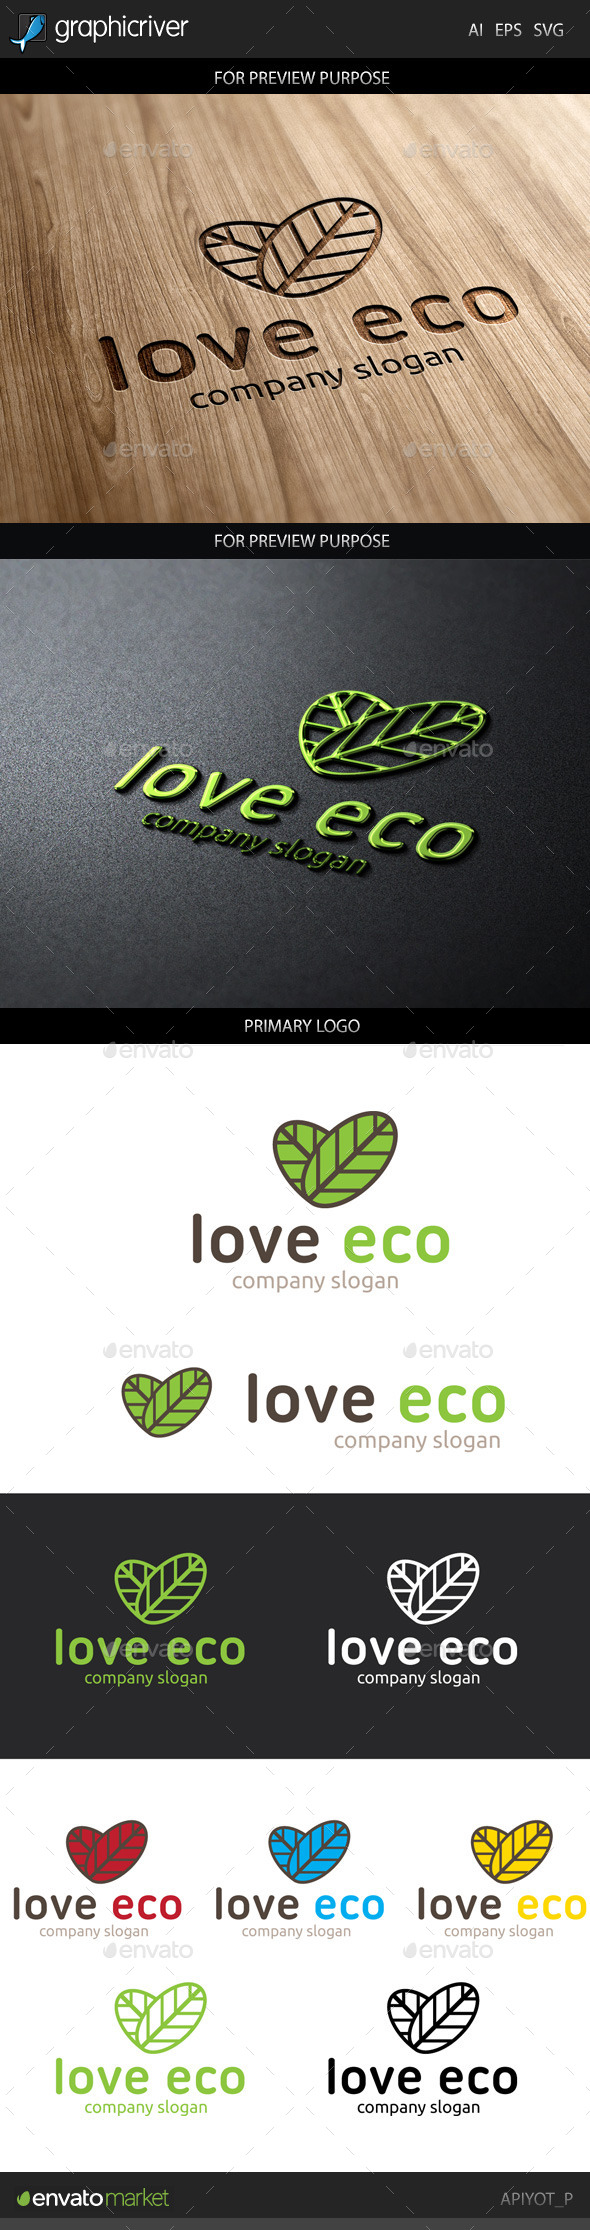 GraphicRiver Love Eco Logo 8847263